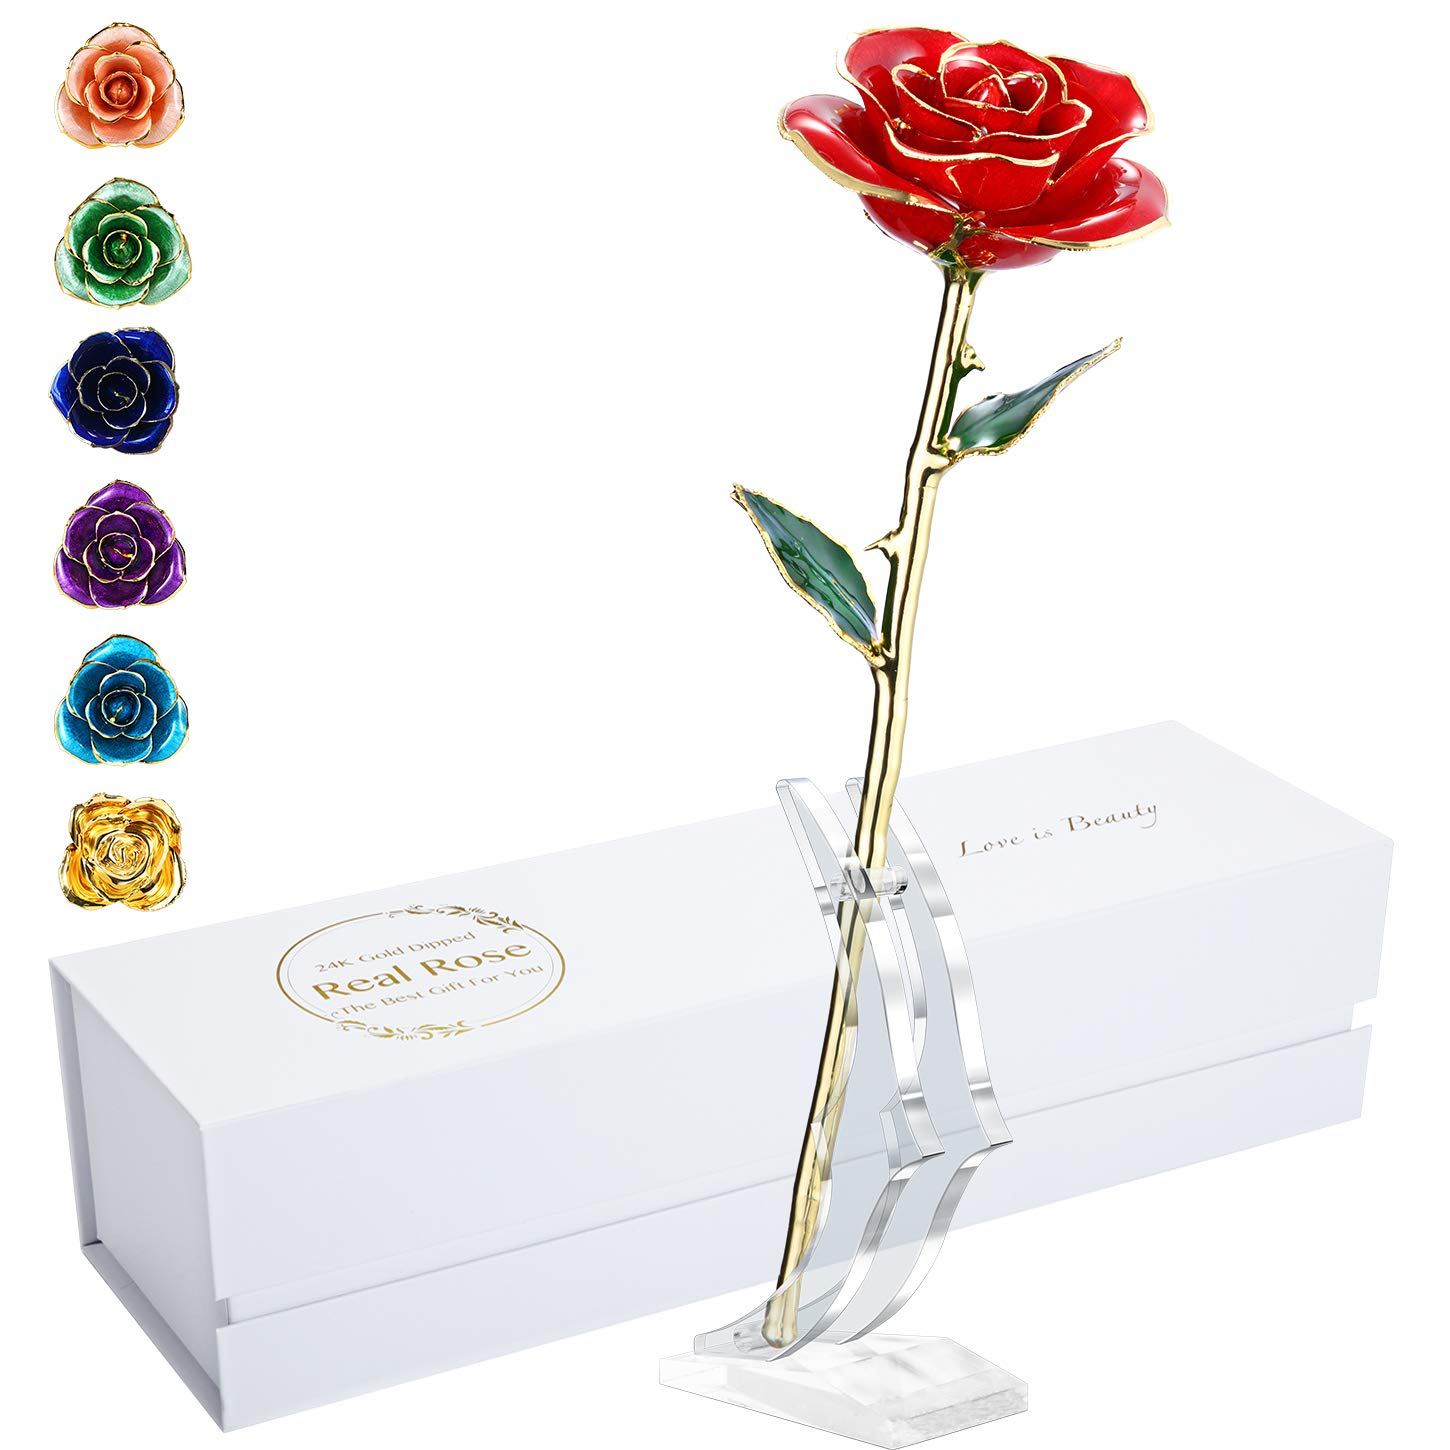 maxspt 24K Gold Rose, Gold Dipped Rose Made from Real Rose Best Gifts for her and Great Gifts for Wife, with Stand